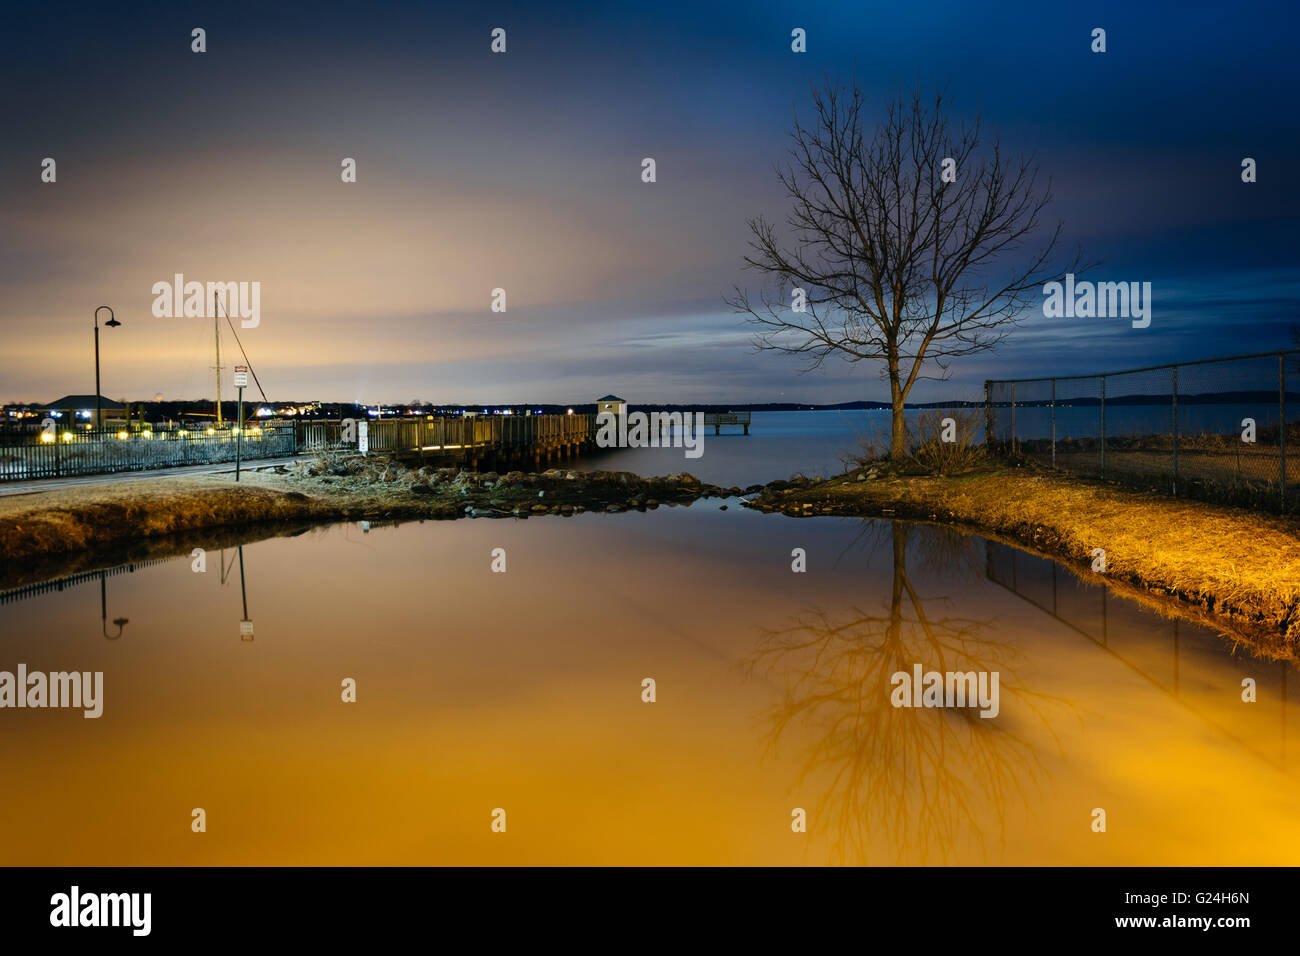 The waterfront at night, in Havre de Grace, Maryland. - Stock Image